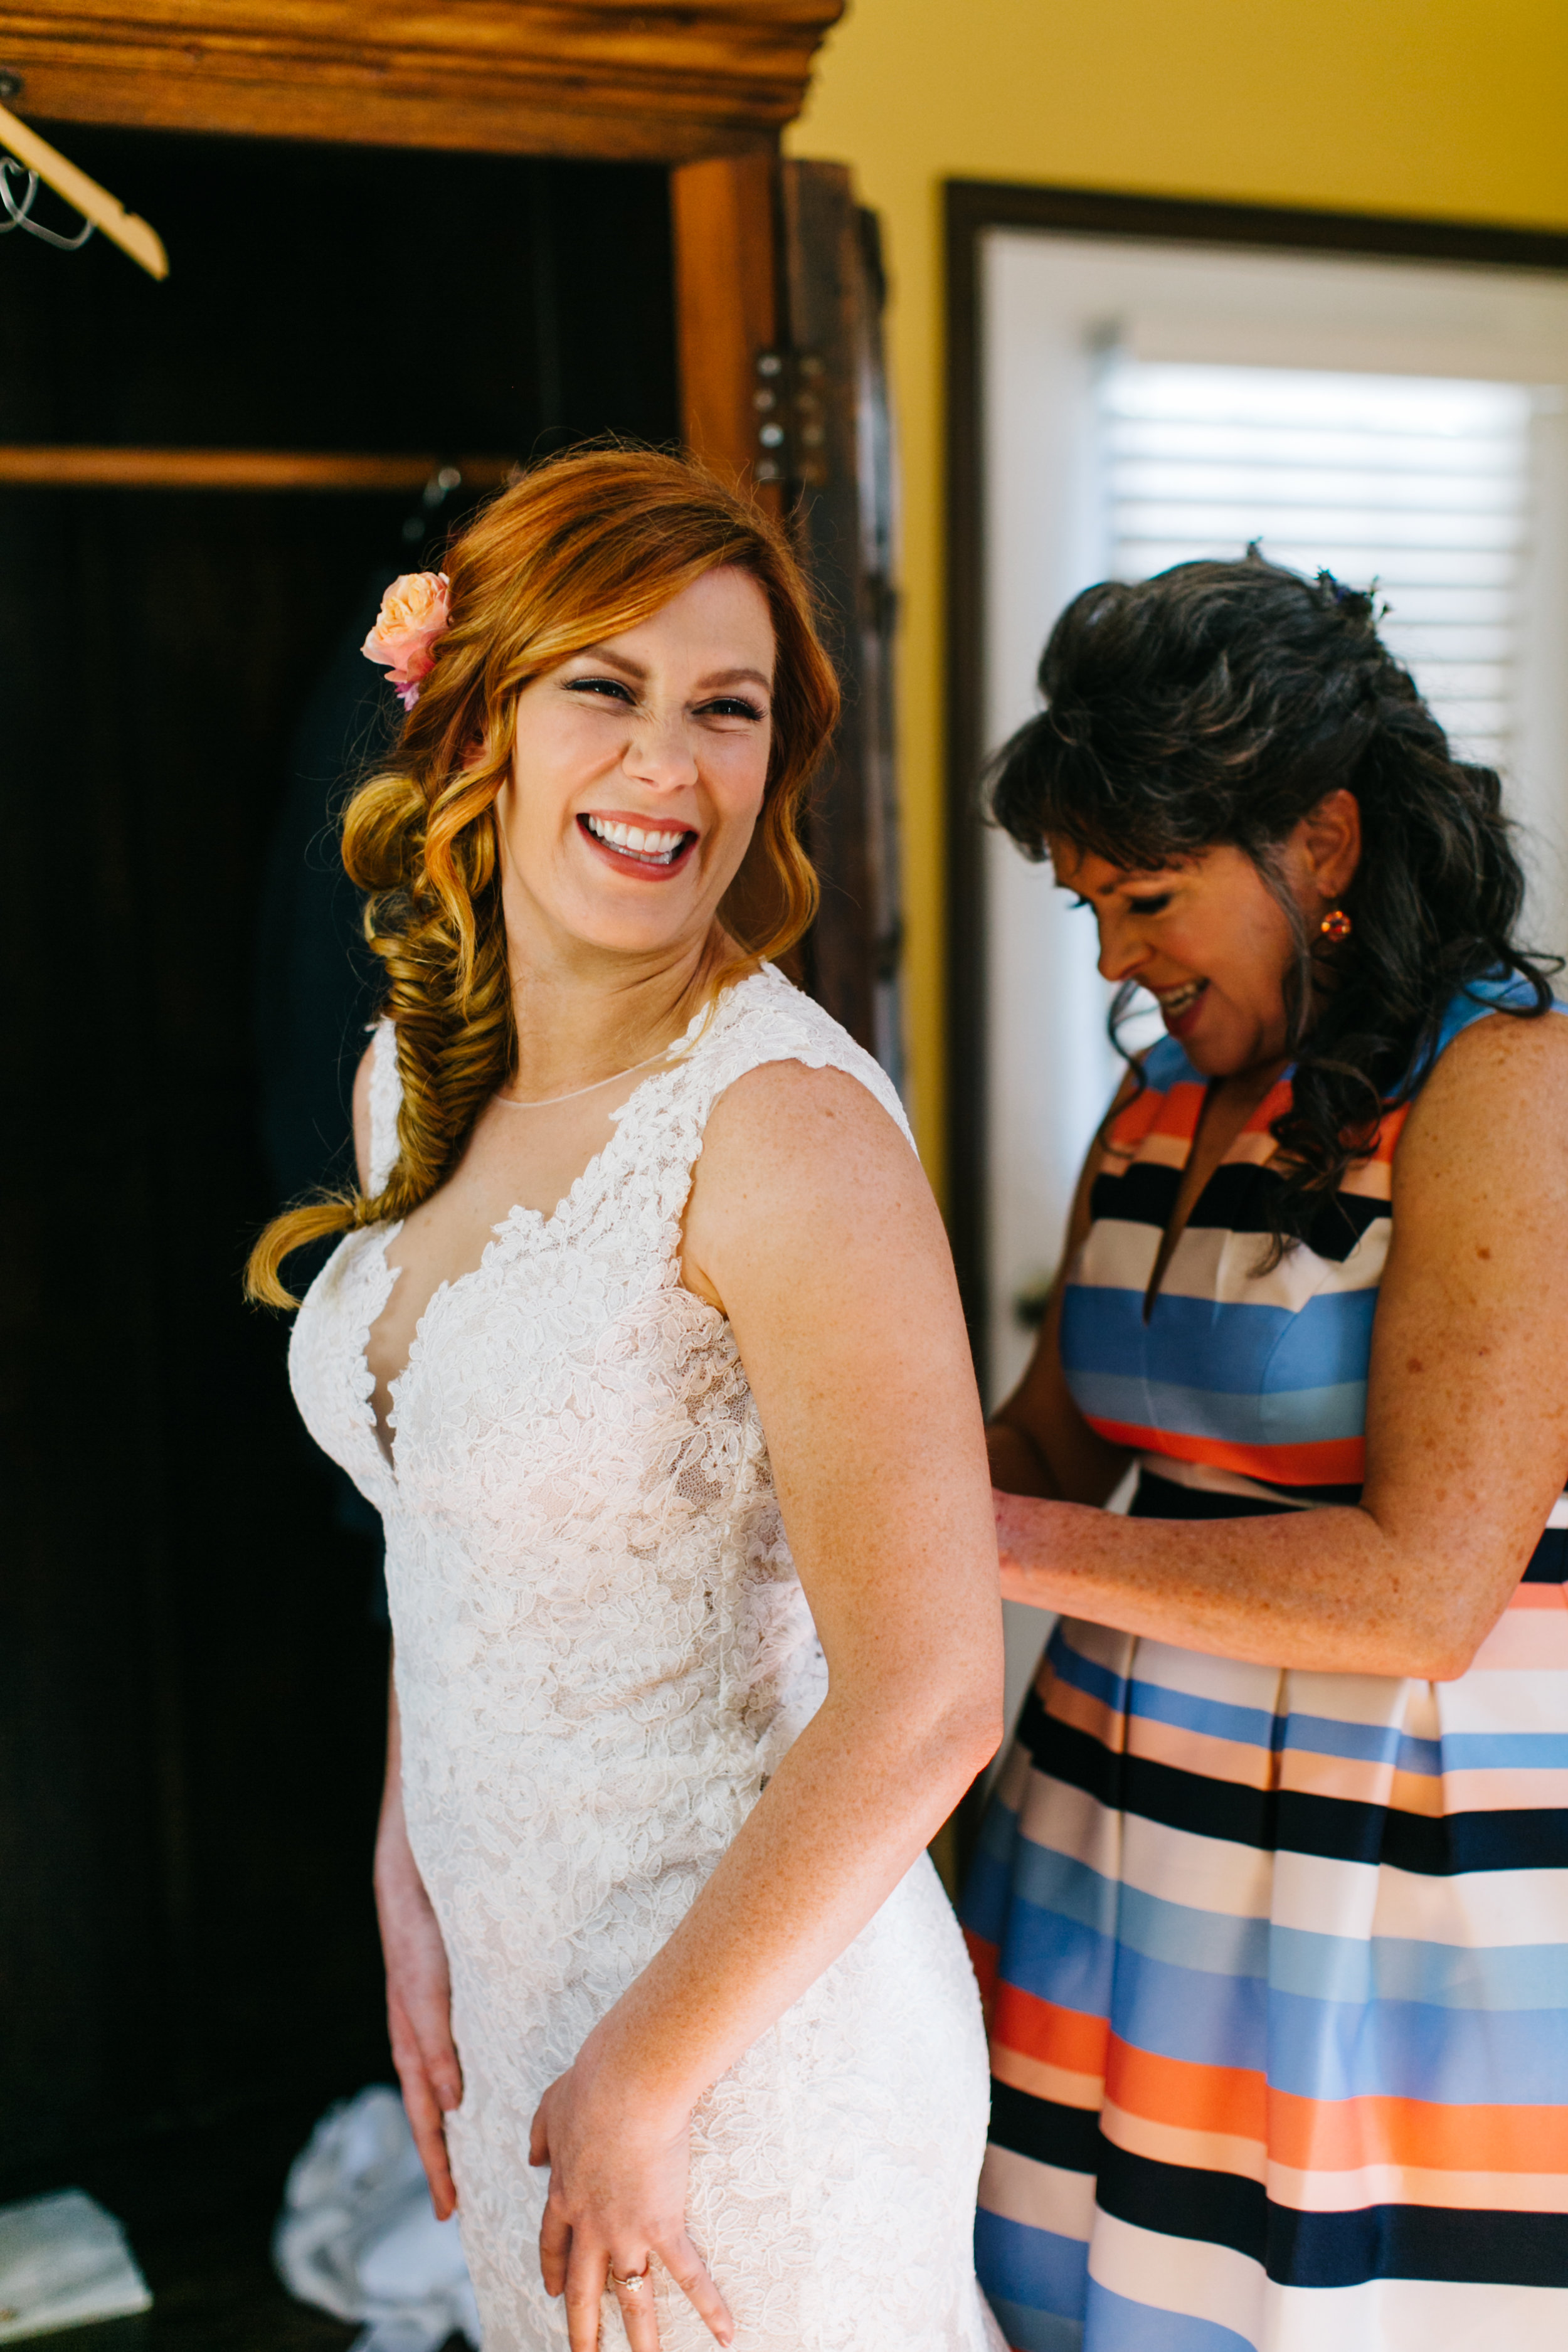 How stinkin' cute is the bride getting ready with her mom!?